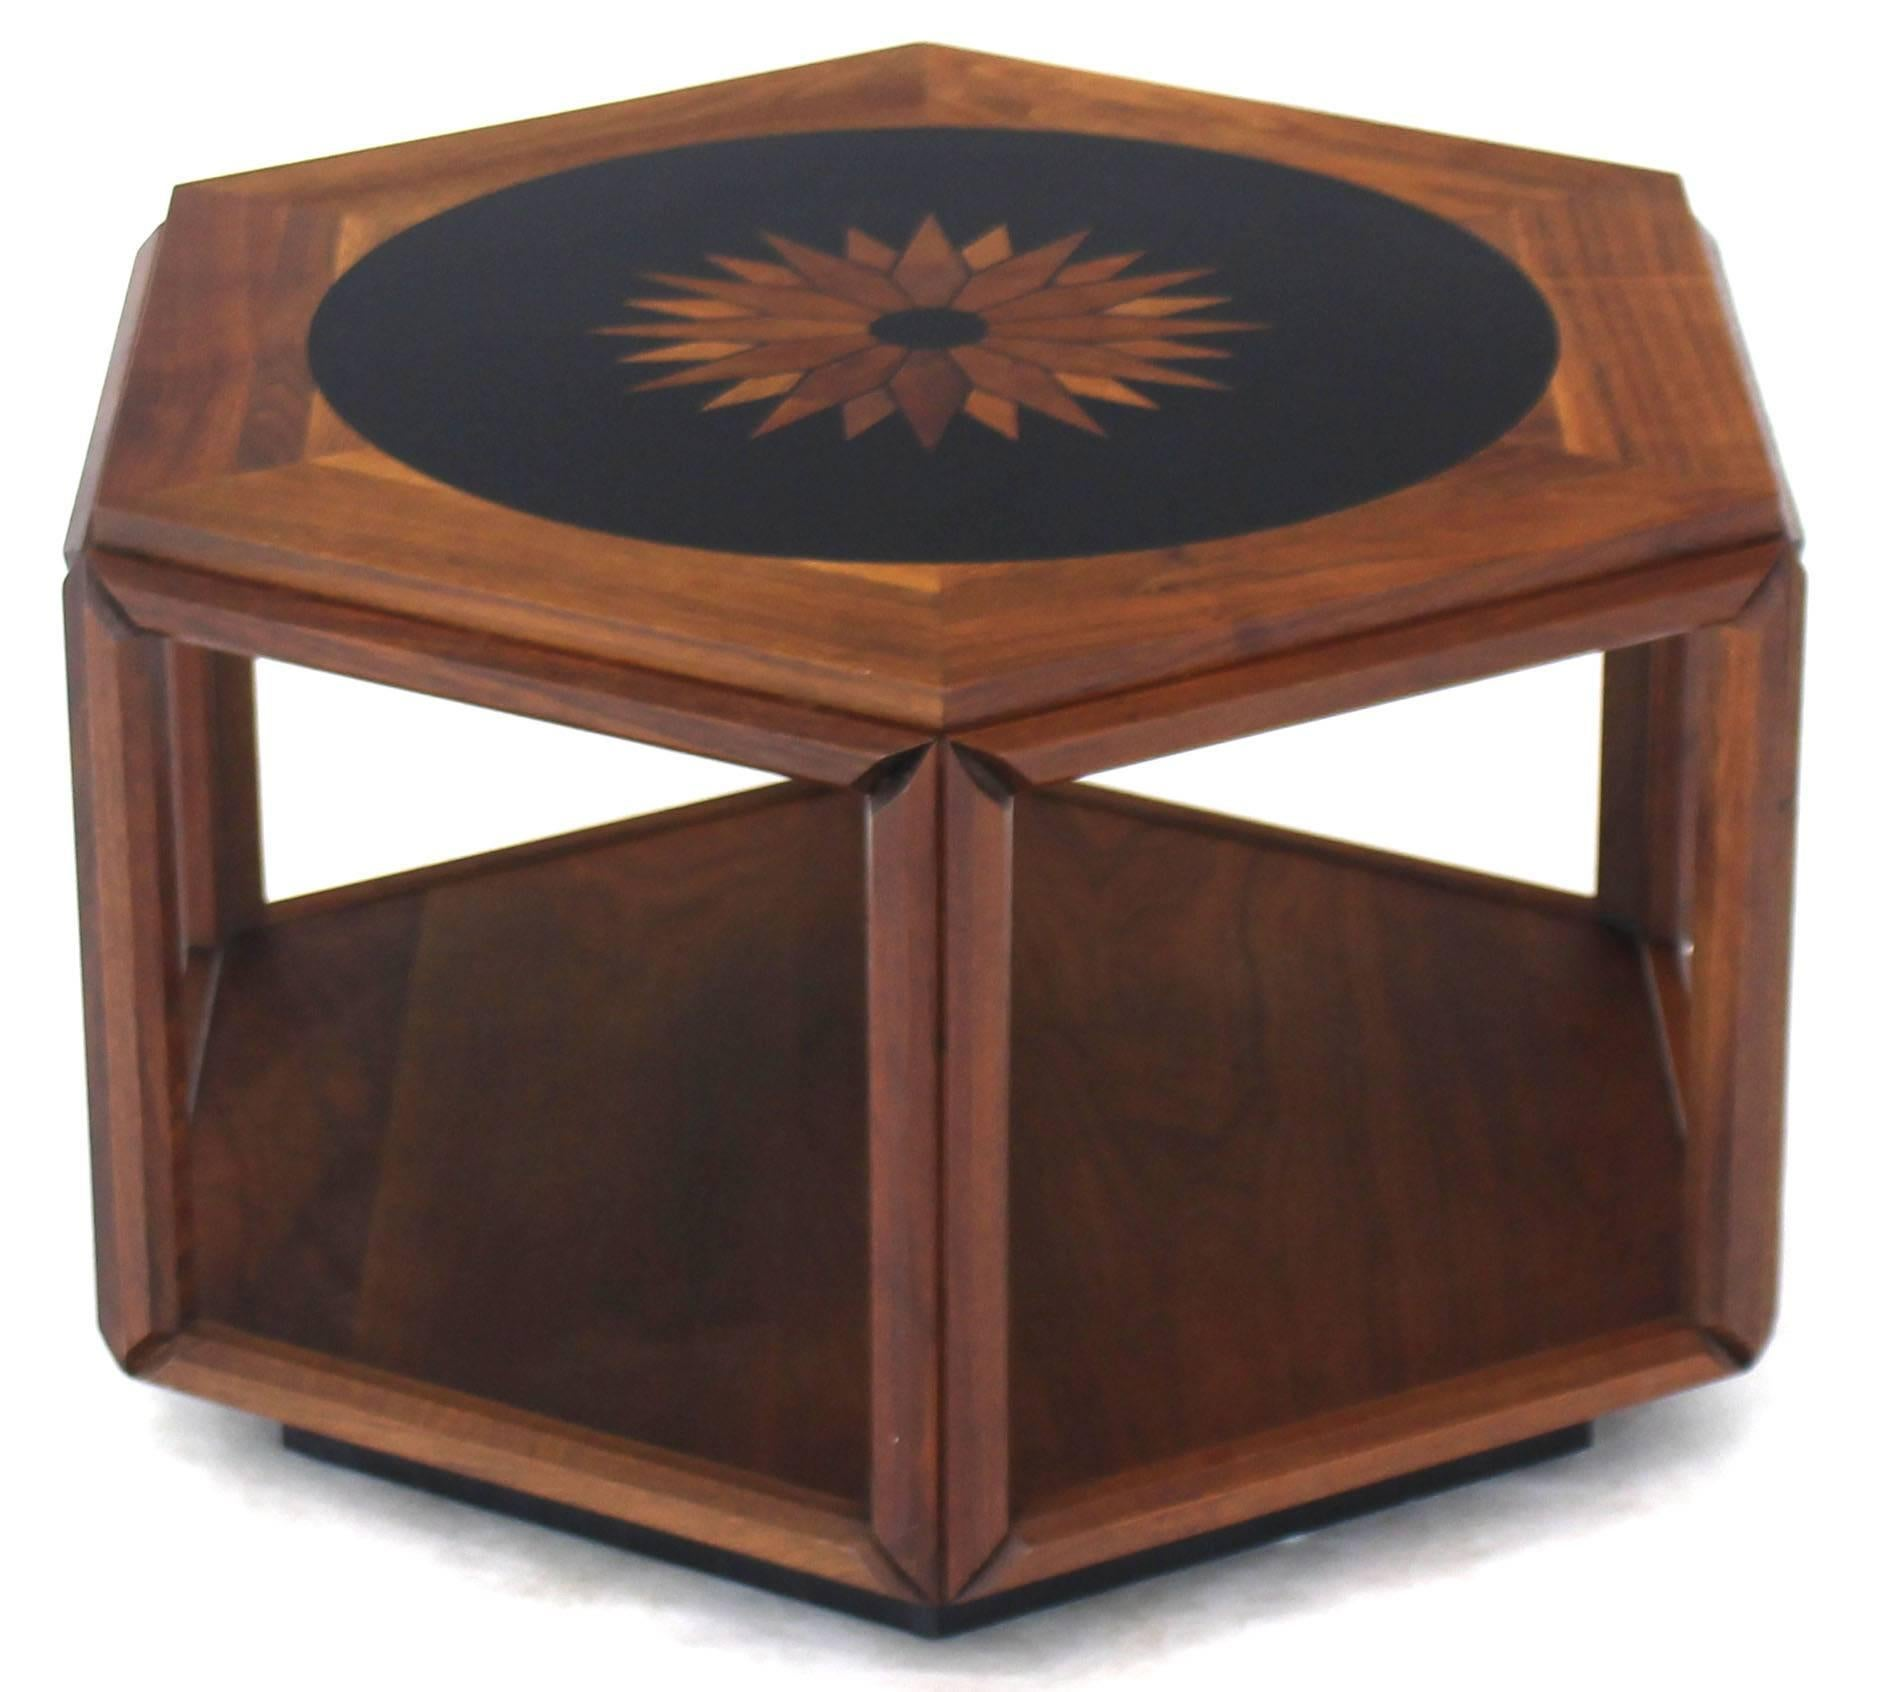 Oiled Walnut Hexagonal Centre Side Table By John Keal For Brown Saltman. High  Quality Walnut